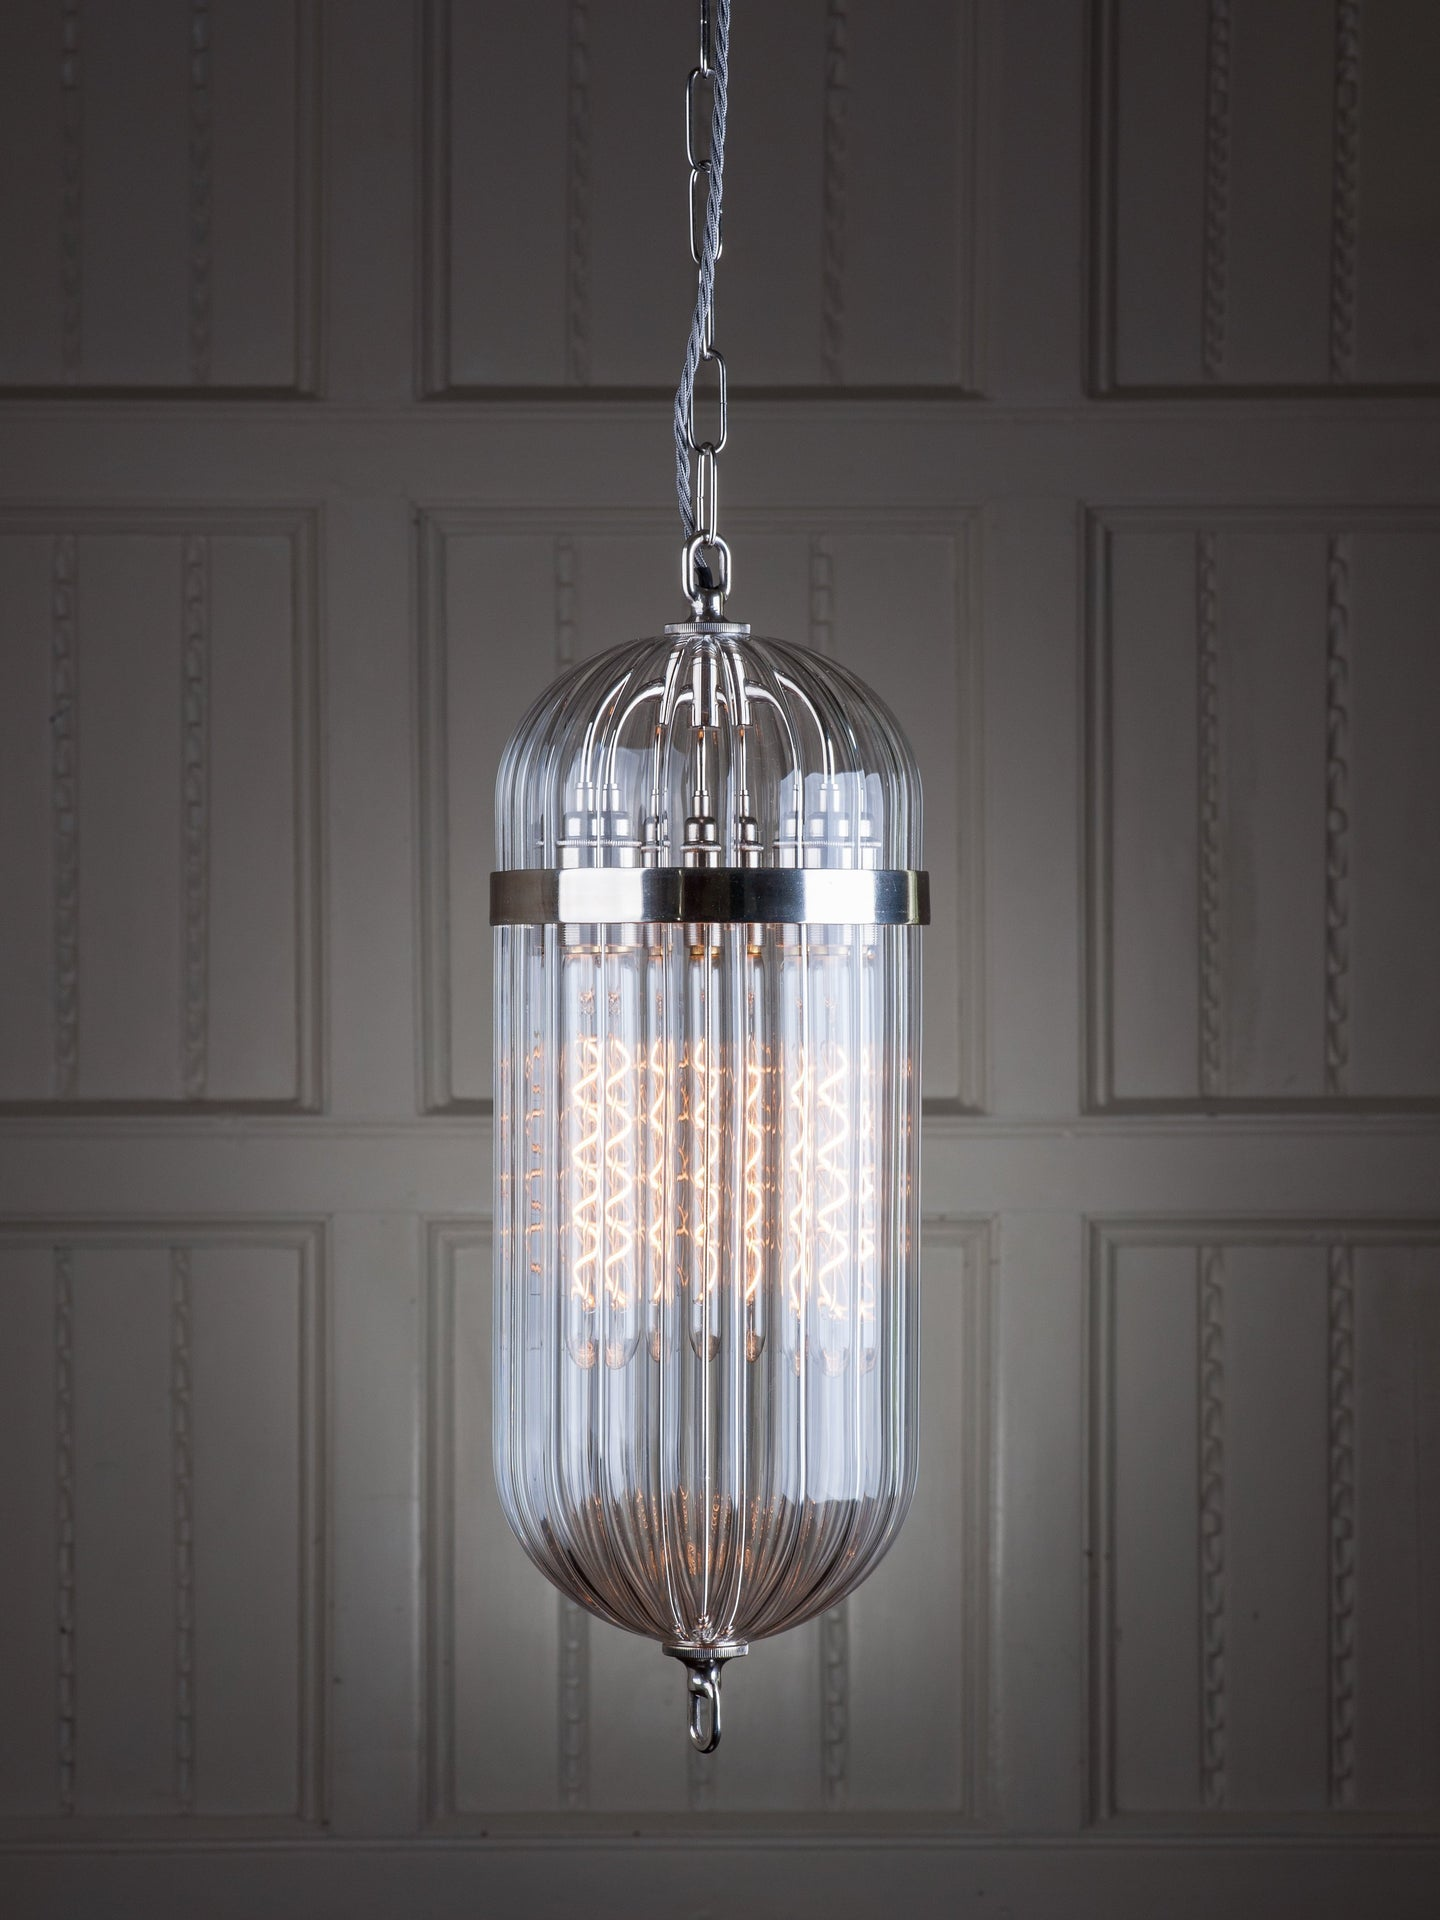 Antique Lantern in Nickel by Fritz Fryer for AUTHOR: the home of British-made furniture